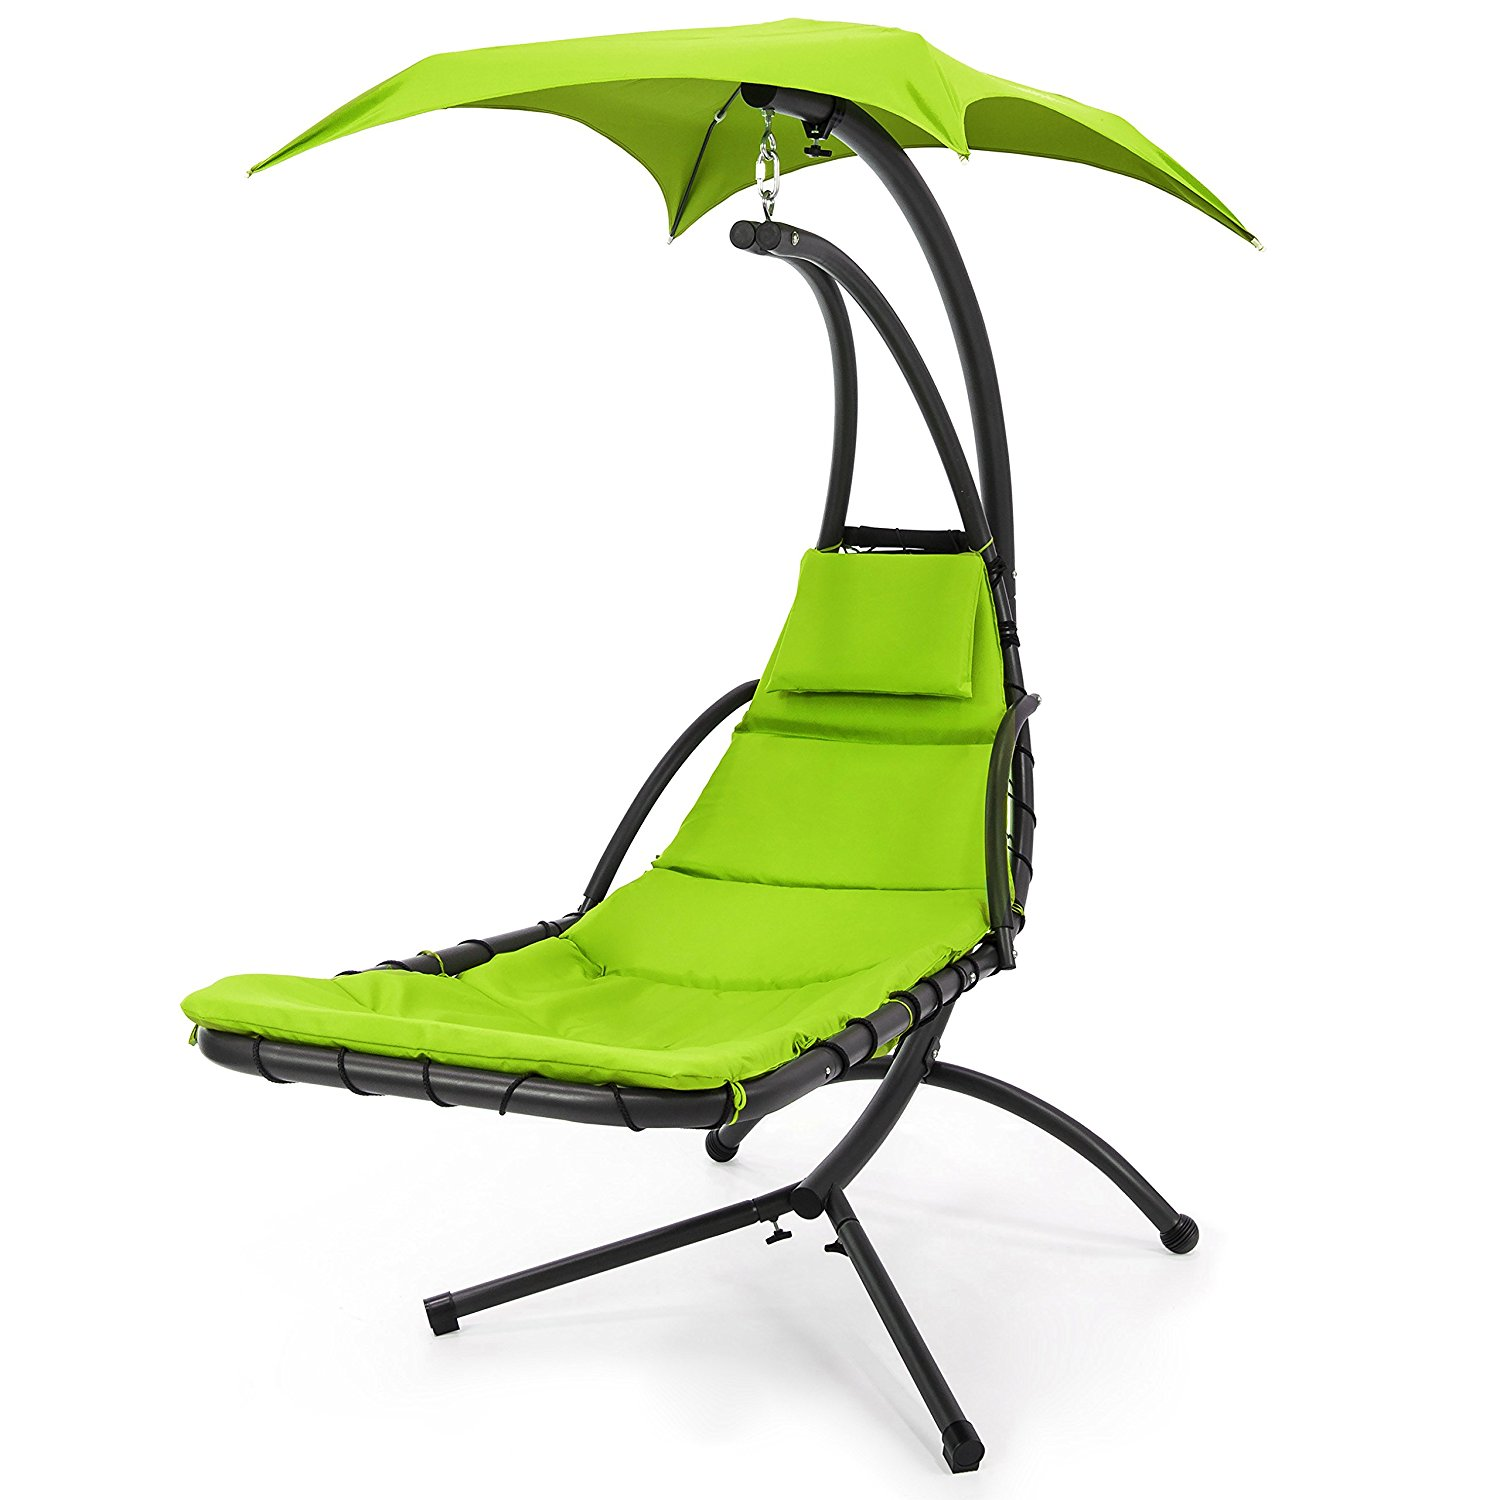 swing chair game luxury desk chairs hanging chaise lounger with canopy best price hot